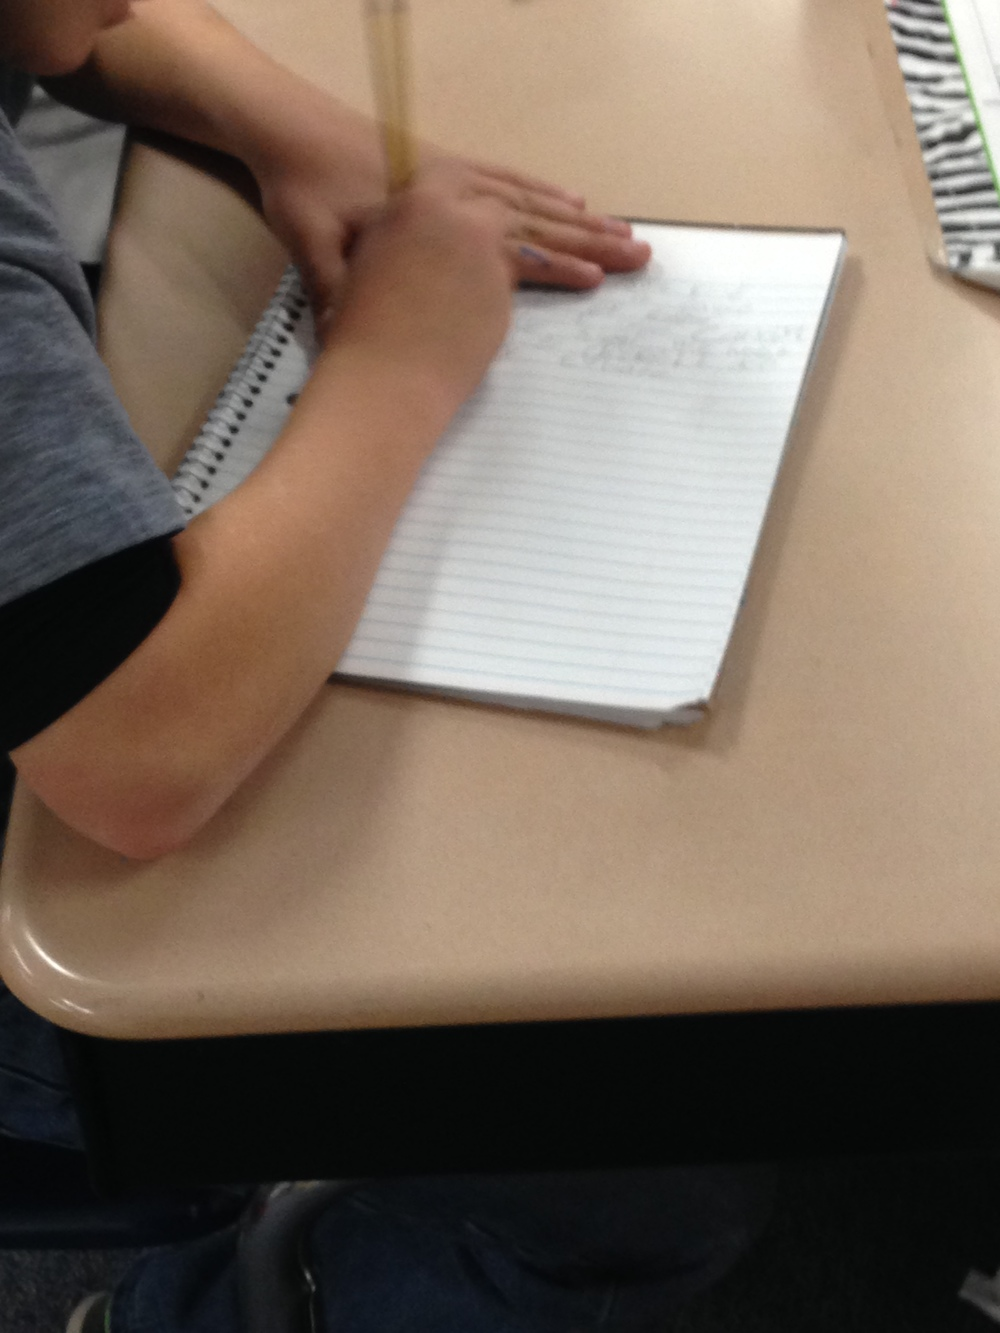 Writing so fast, the pencil is blurry!